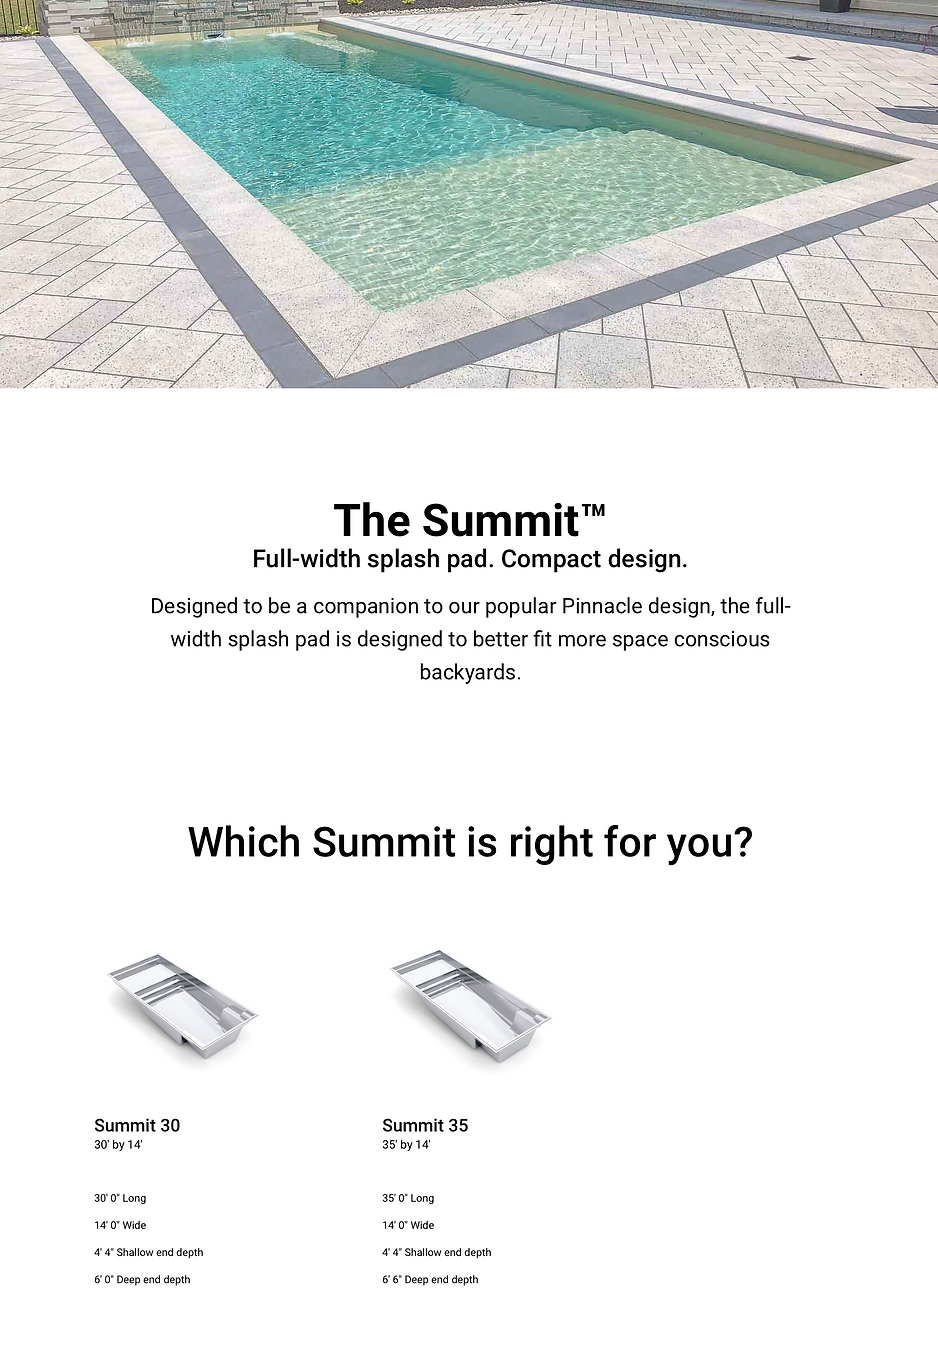 The Summit Design.png